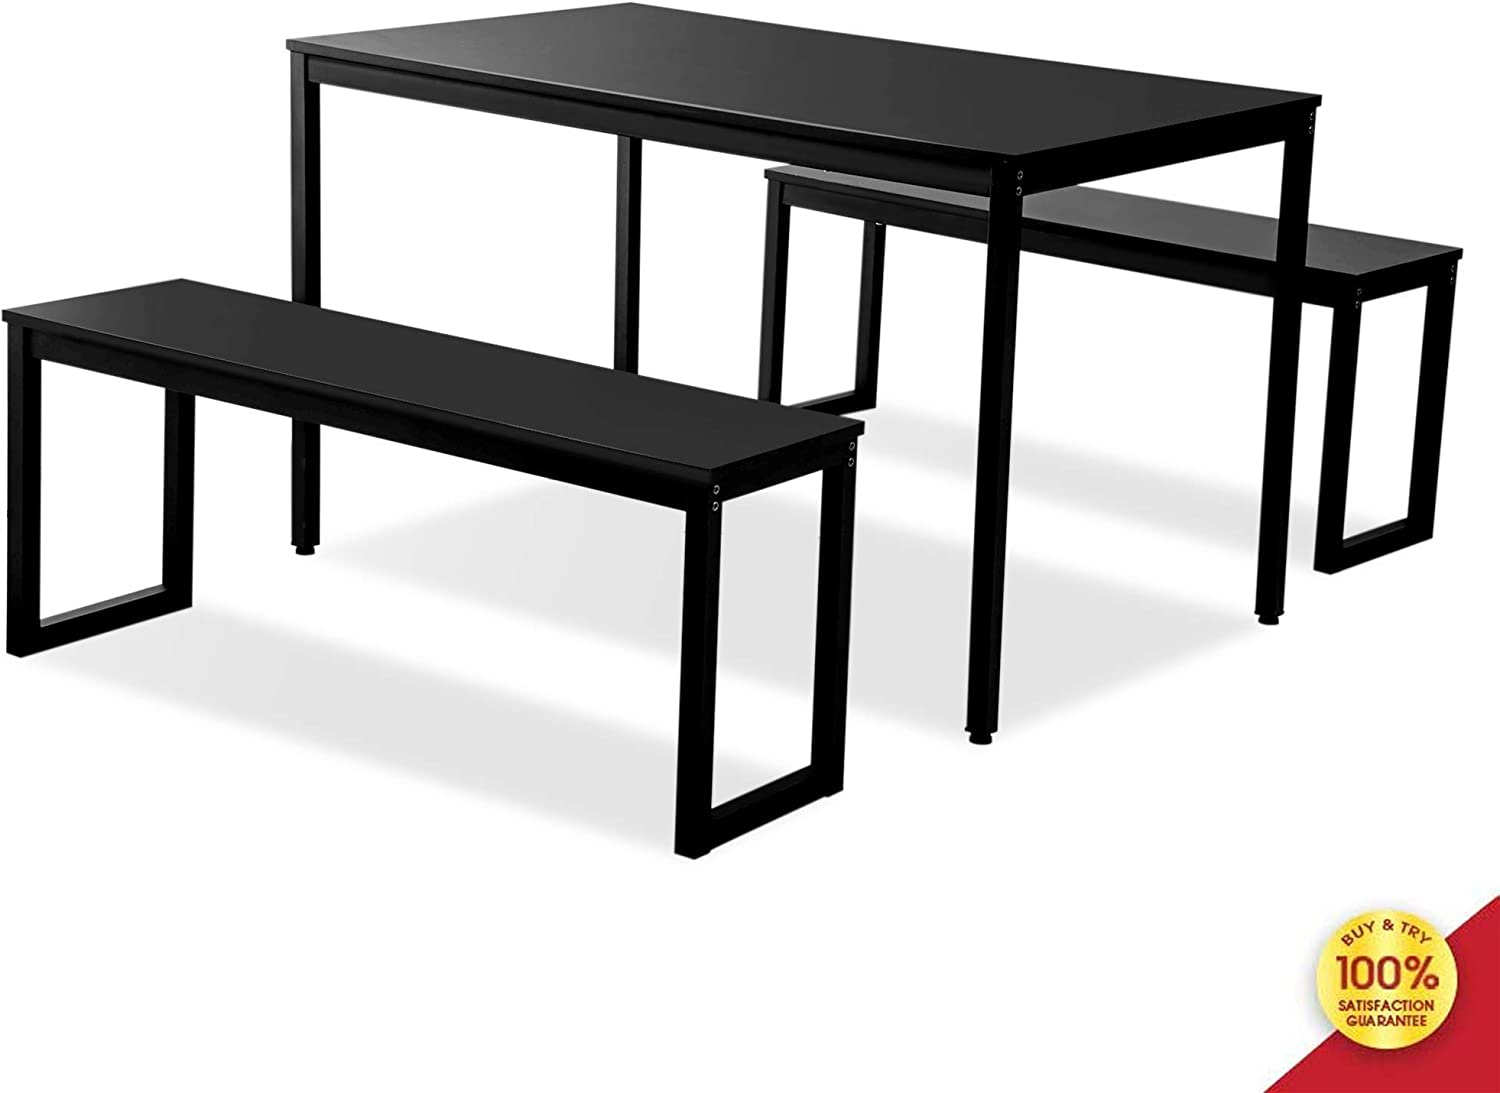 ALI VIRGO Piece Modern Soho Dining Set Kitchen Tables with Two Benches Contemporary Home Furniture, Steel Frame, Cool Black